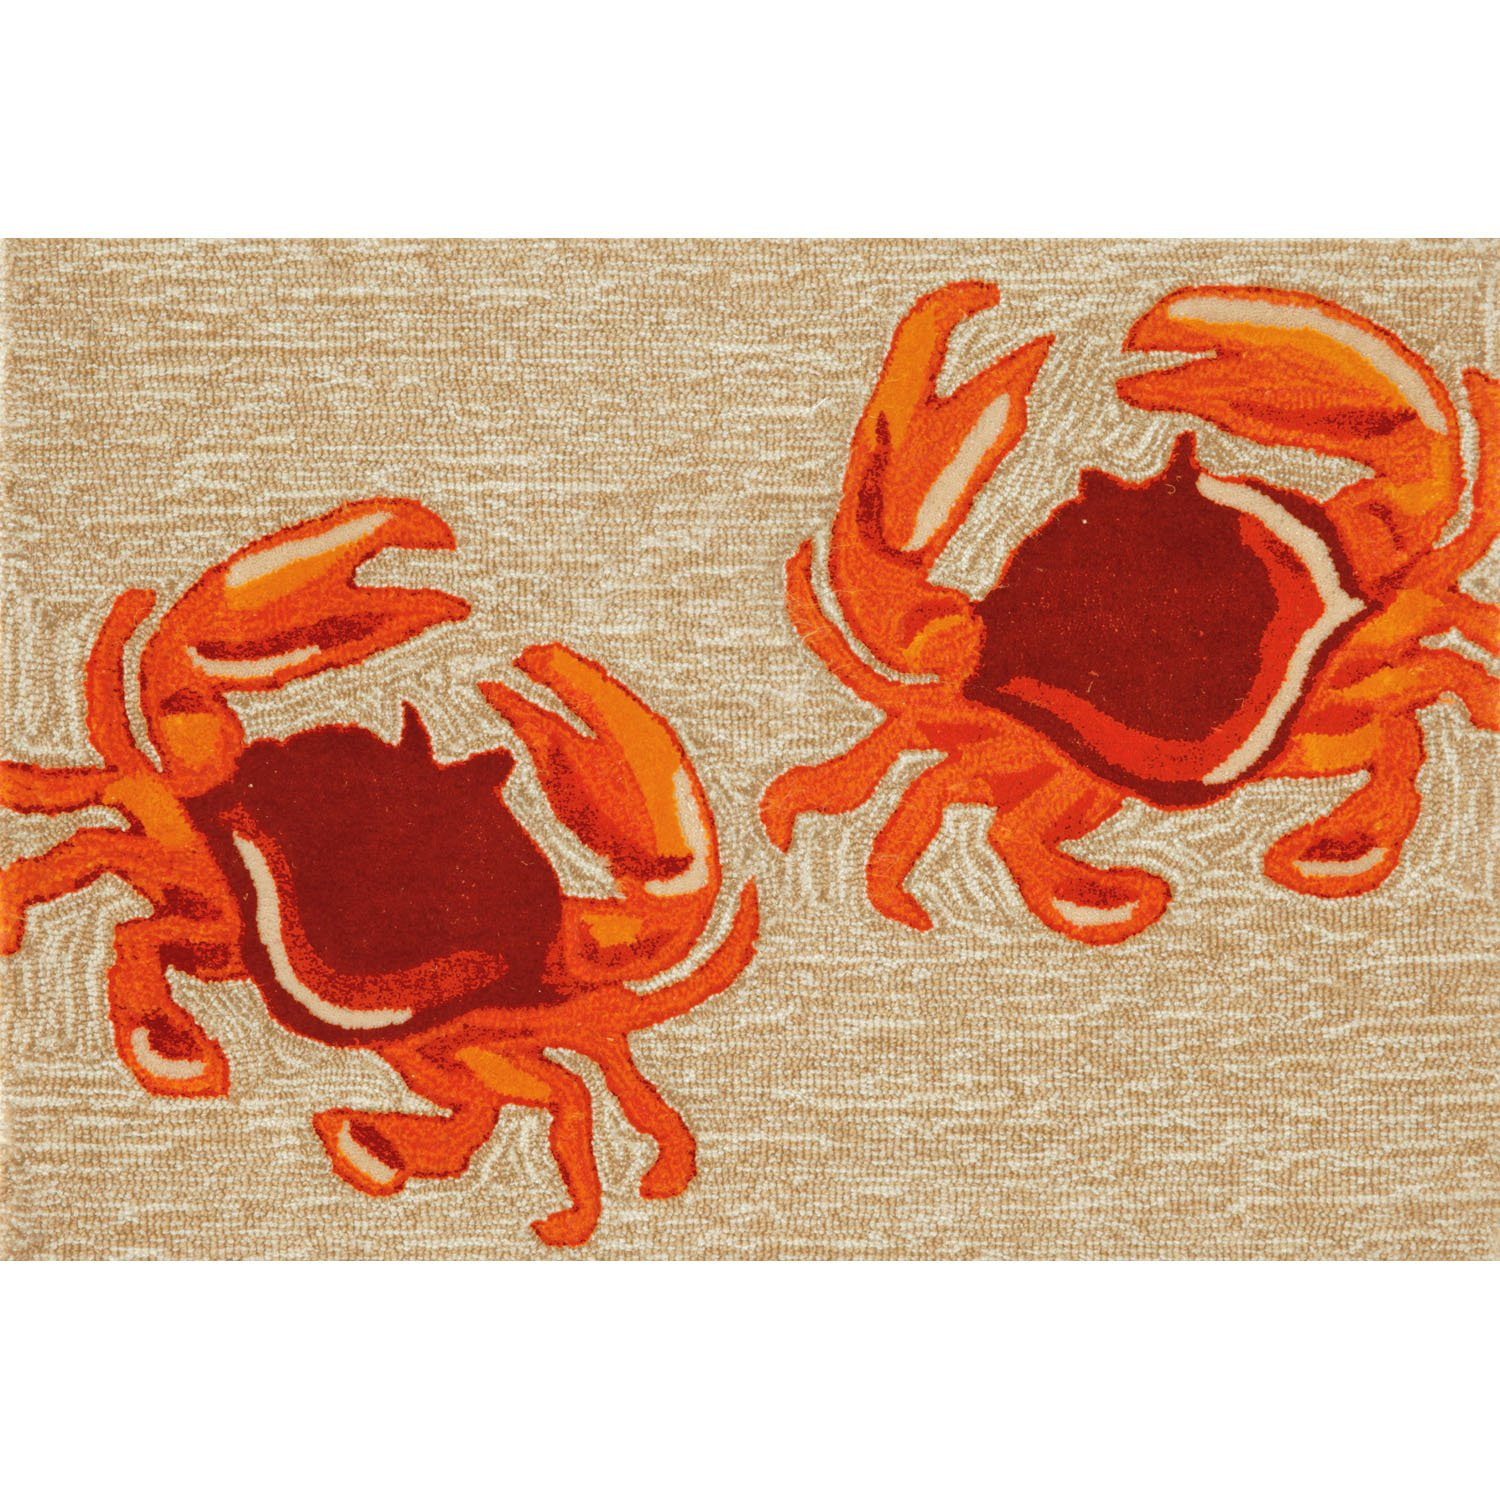 Liora Manne FT112A50012 Whimsy Claws Rug, 20x 30, Natural 20x 30 The Trans Ocean Group